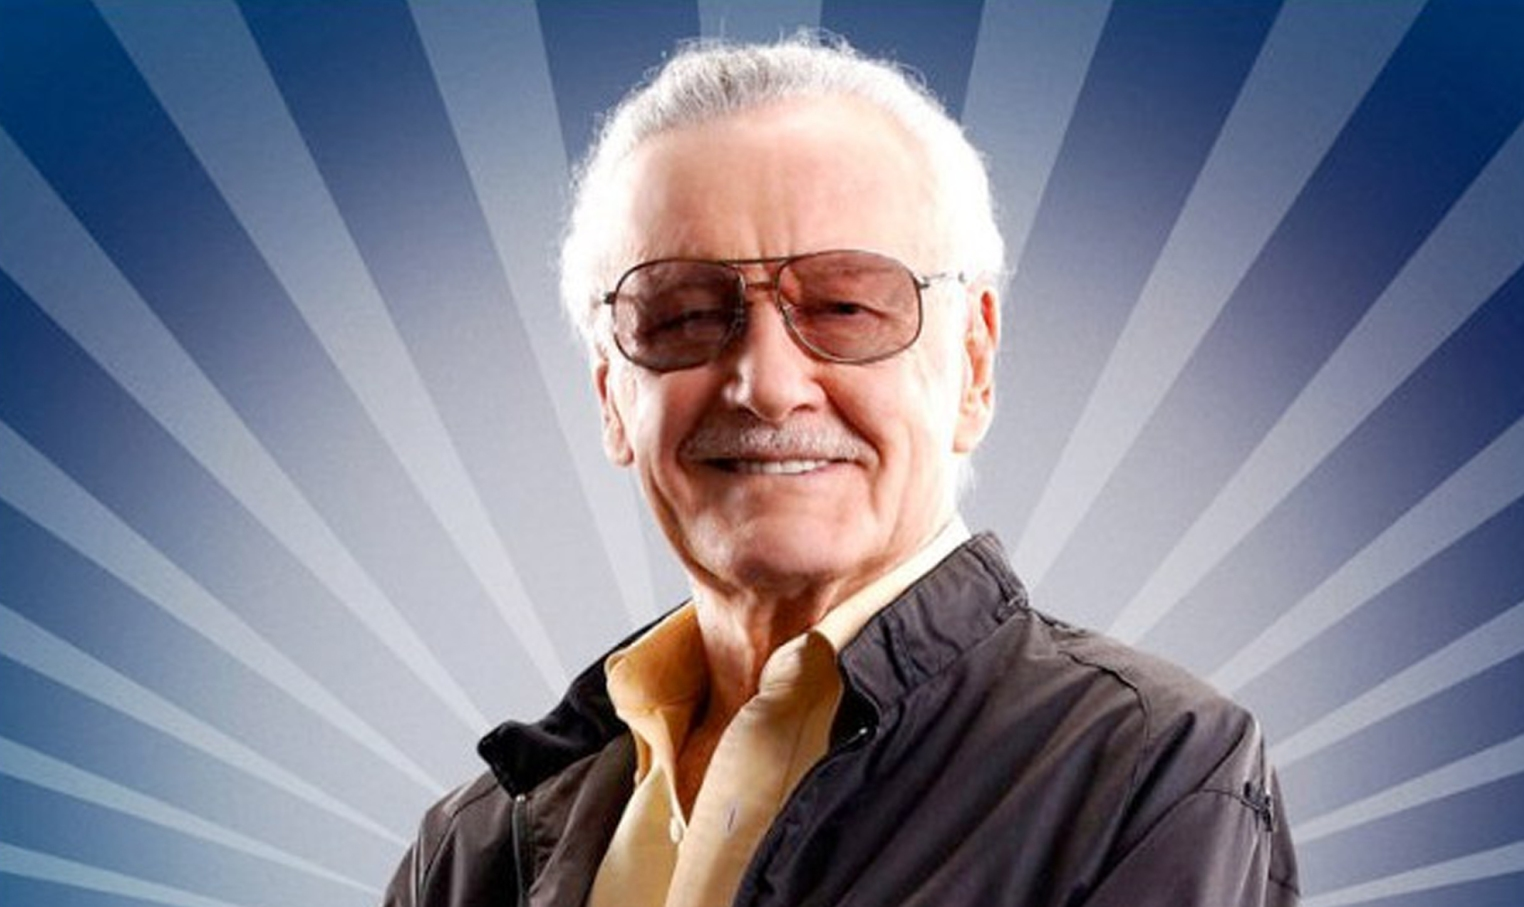 Top 10 Caméo Stan Lee My Geek Actu 2.jpg